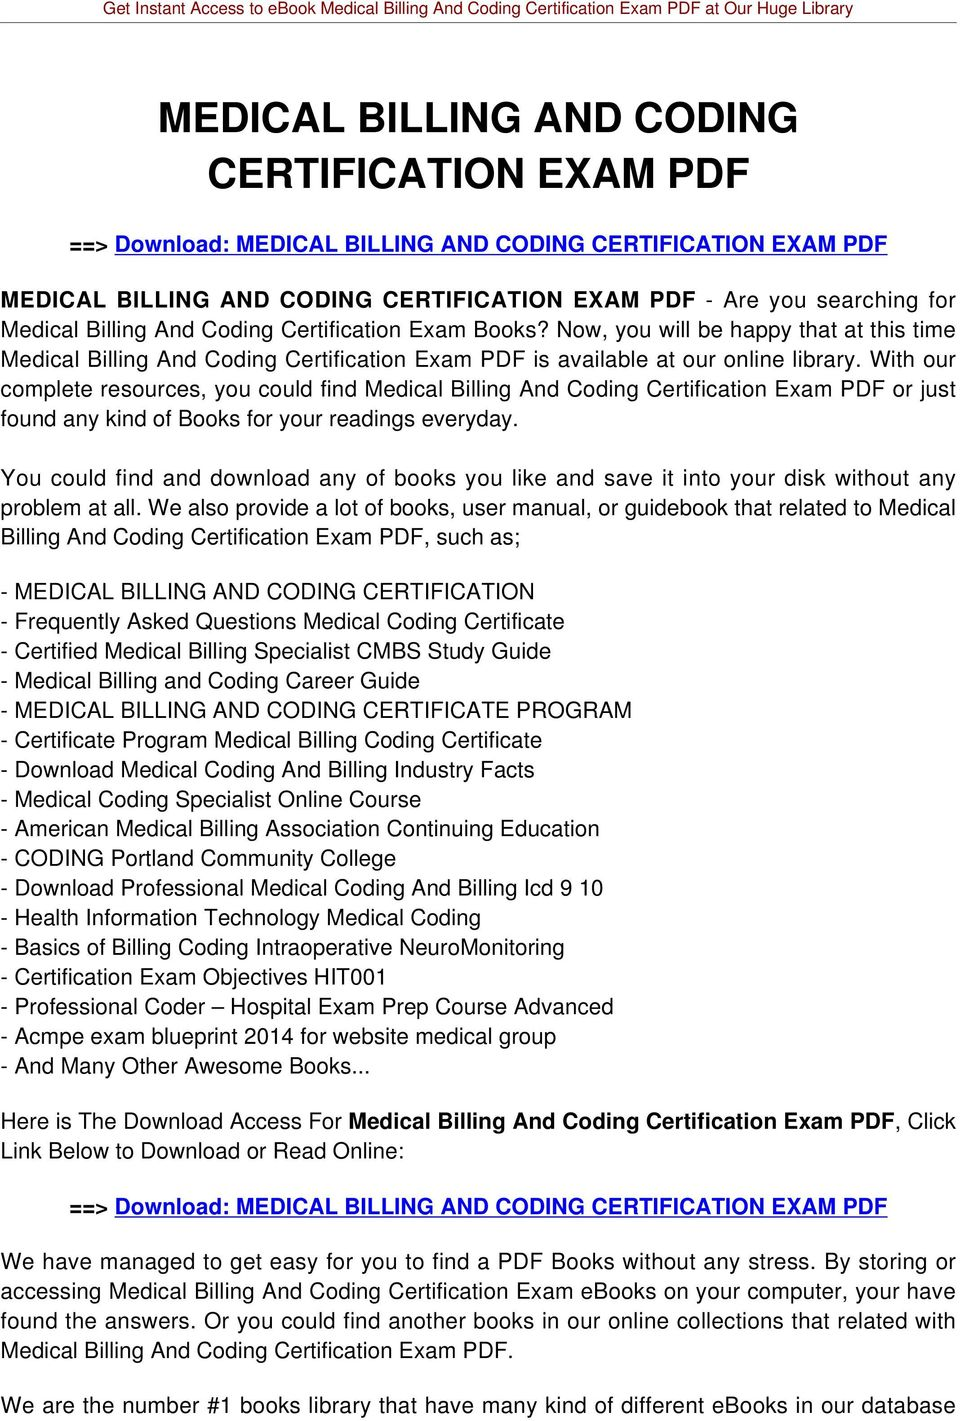 With our complete resources, you could find Medical Billing And Coding Certification Exam PDF or just found any kind of Books for your readings everyday.